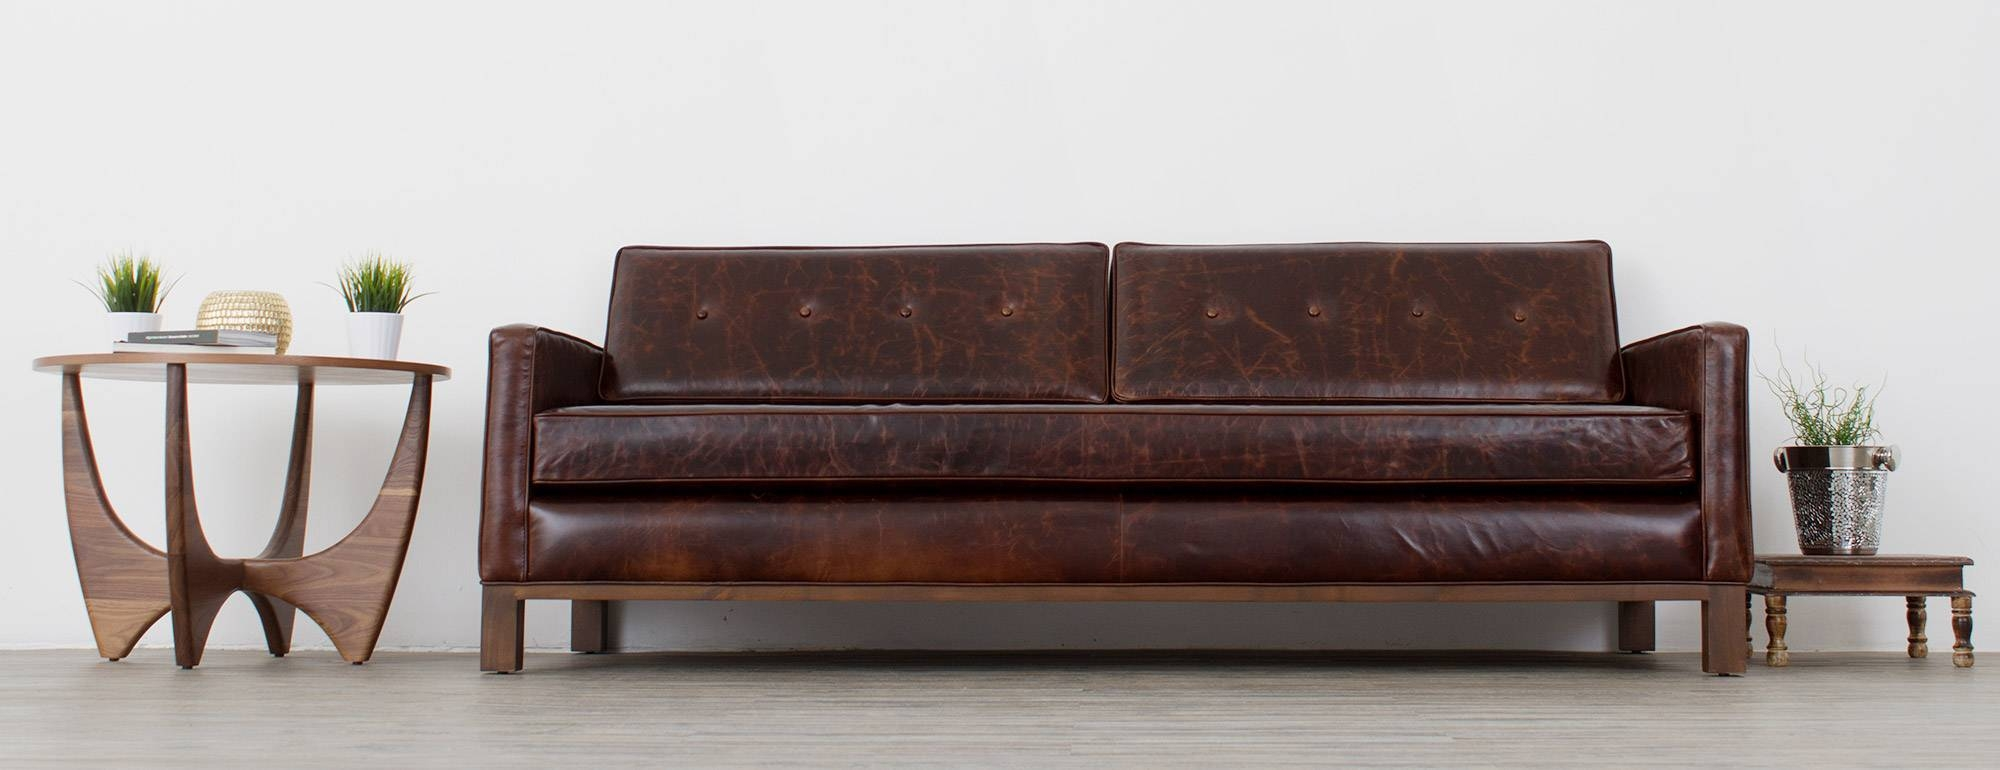 Raine Leather Sofa Joybird Brompton Hmmi Intended For Sofas Image